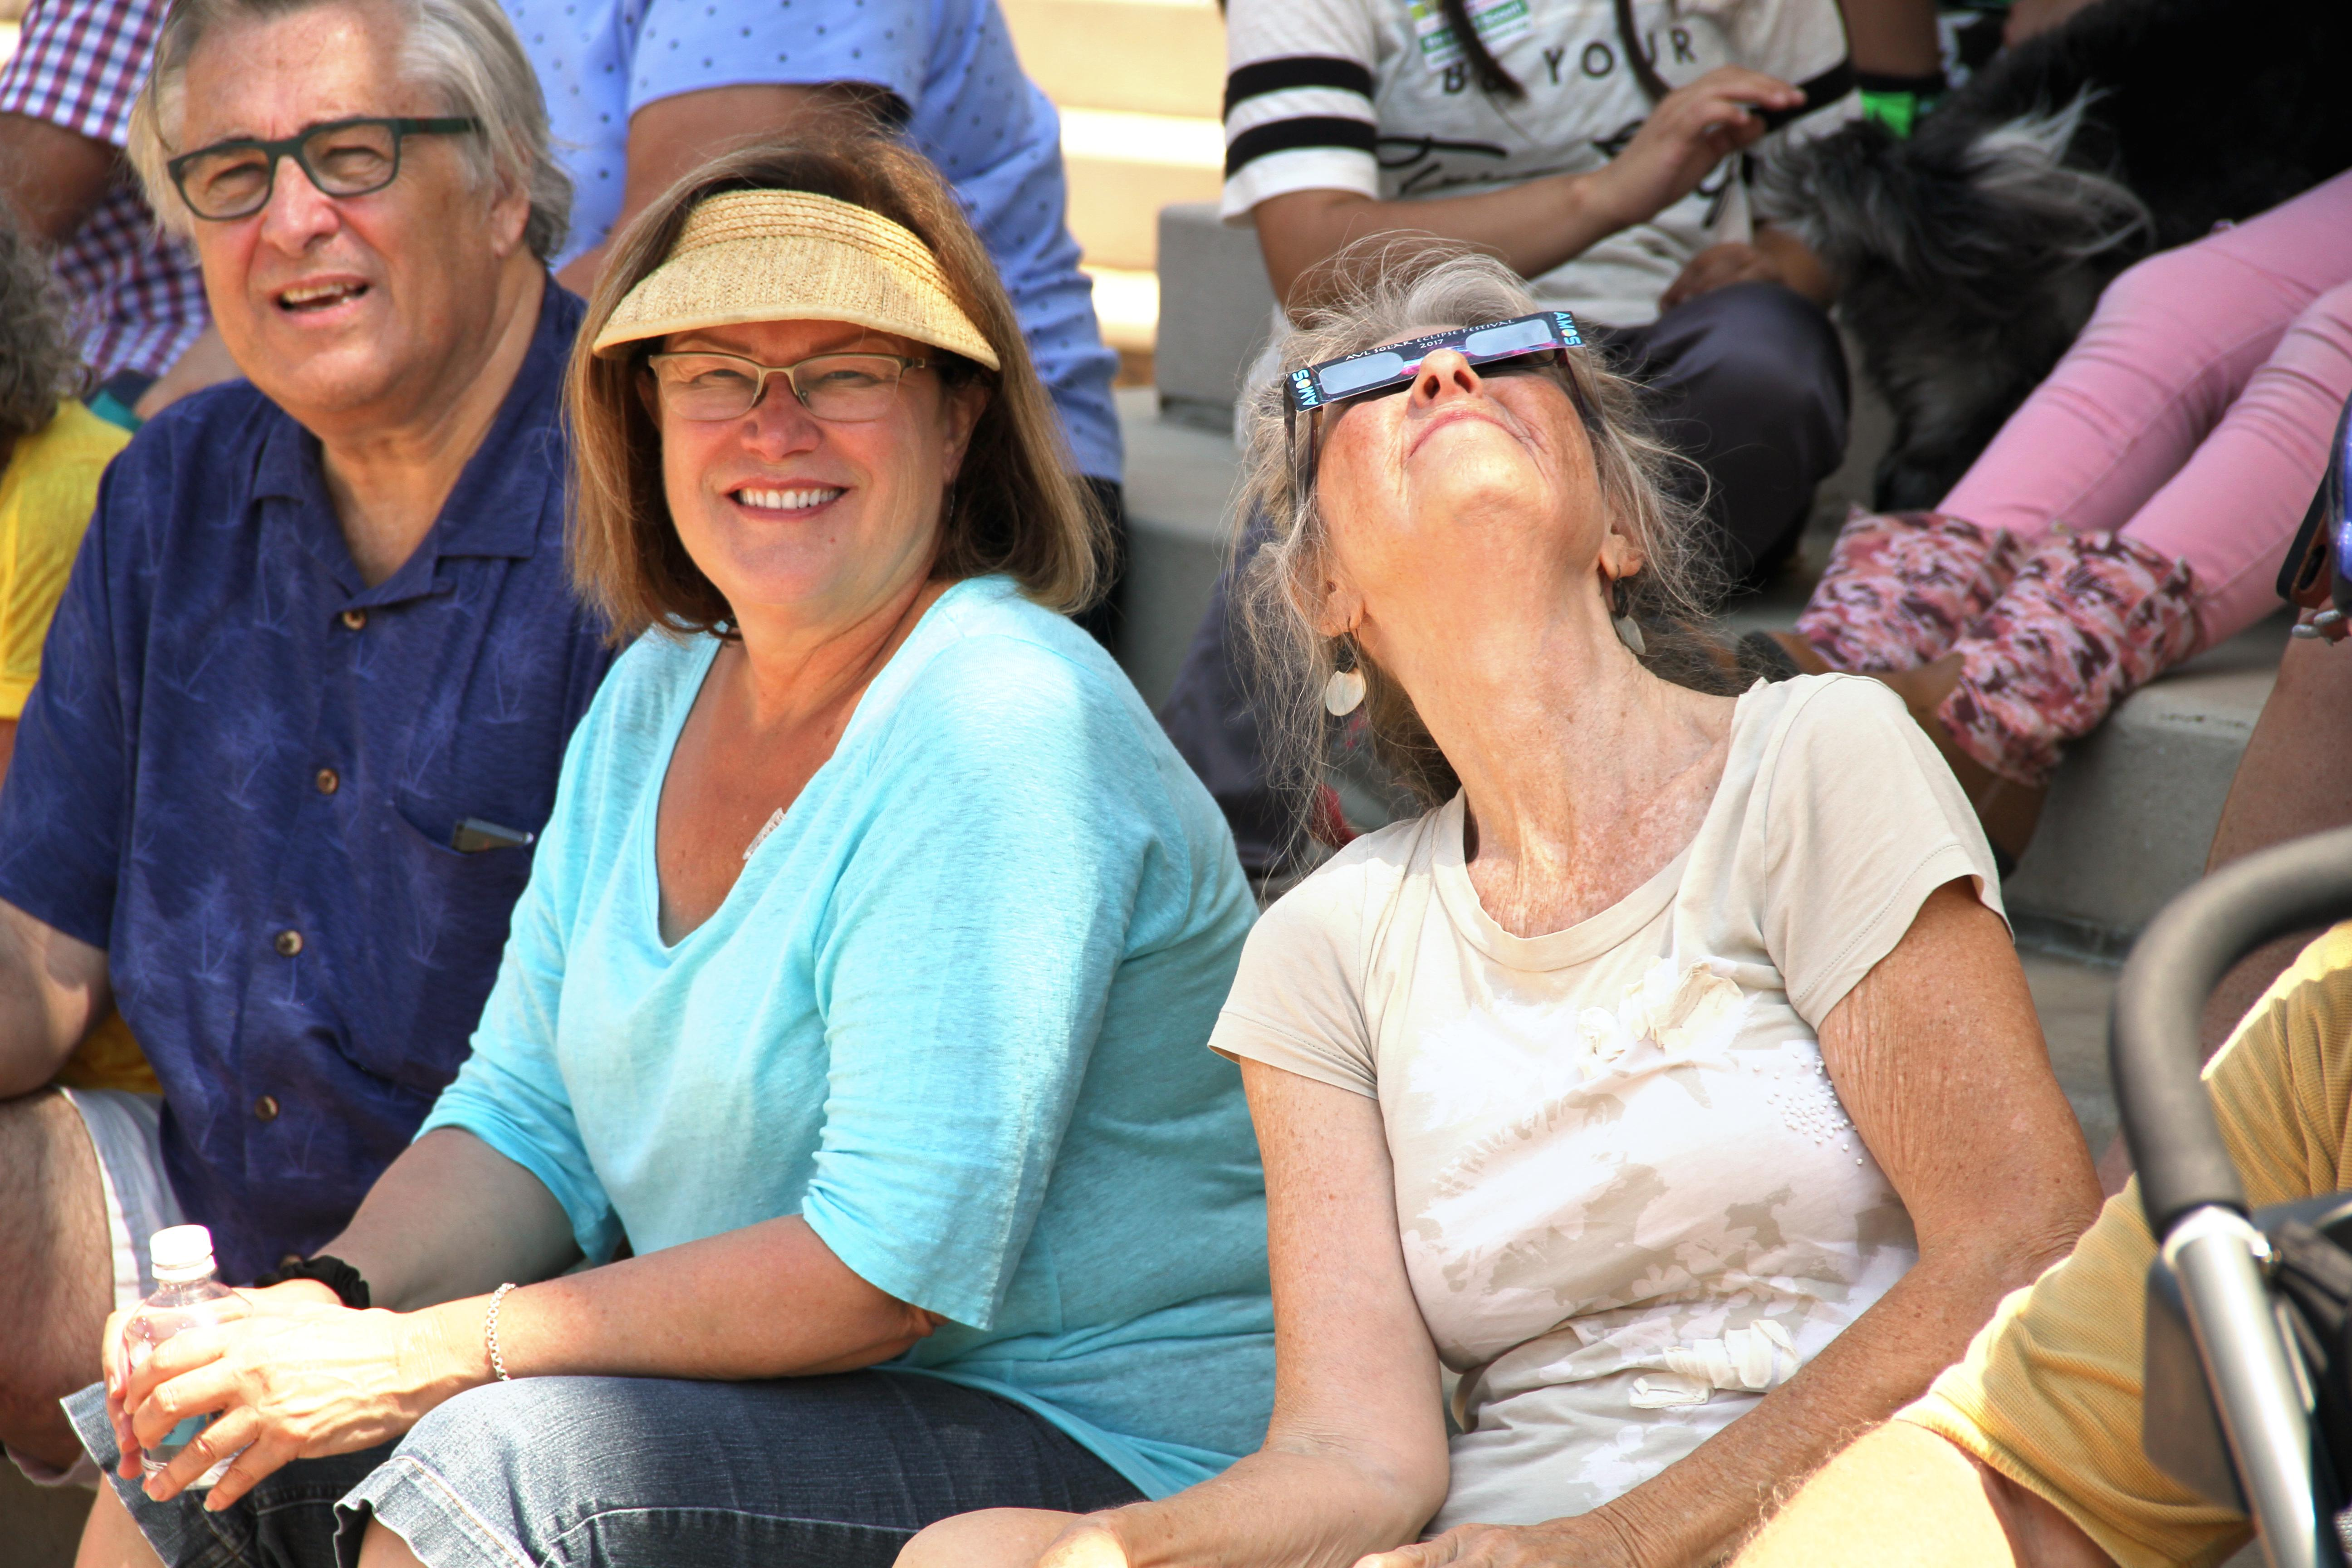 Thousands gathered in Pack Square Park in downtown Asheville for the Solar Eclipse Festival on August 21, 2017. Asheville experienced 99.2 percent obscuration at the peak of this eclipse. During peak, the temperature dropped, street lights came on and the sounds of crickets chirping could be heard. (Photo credit: WLOS Staff)